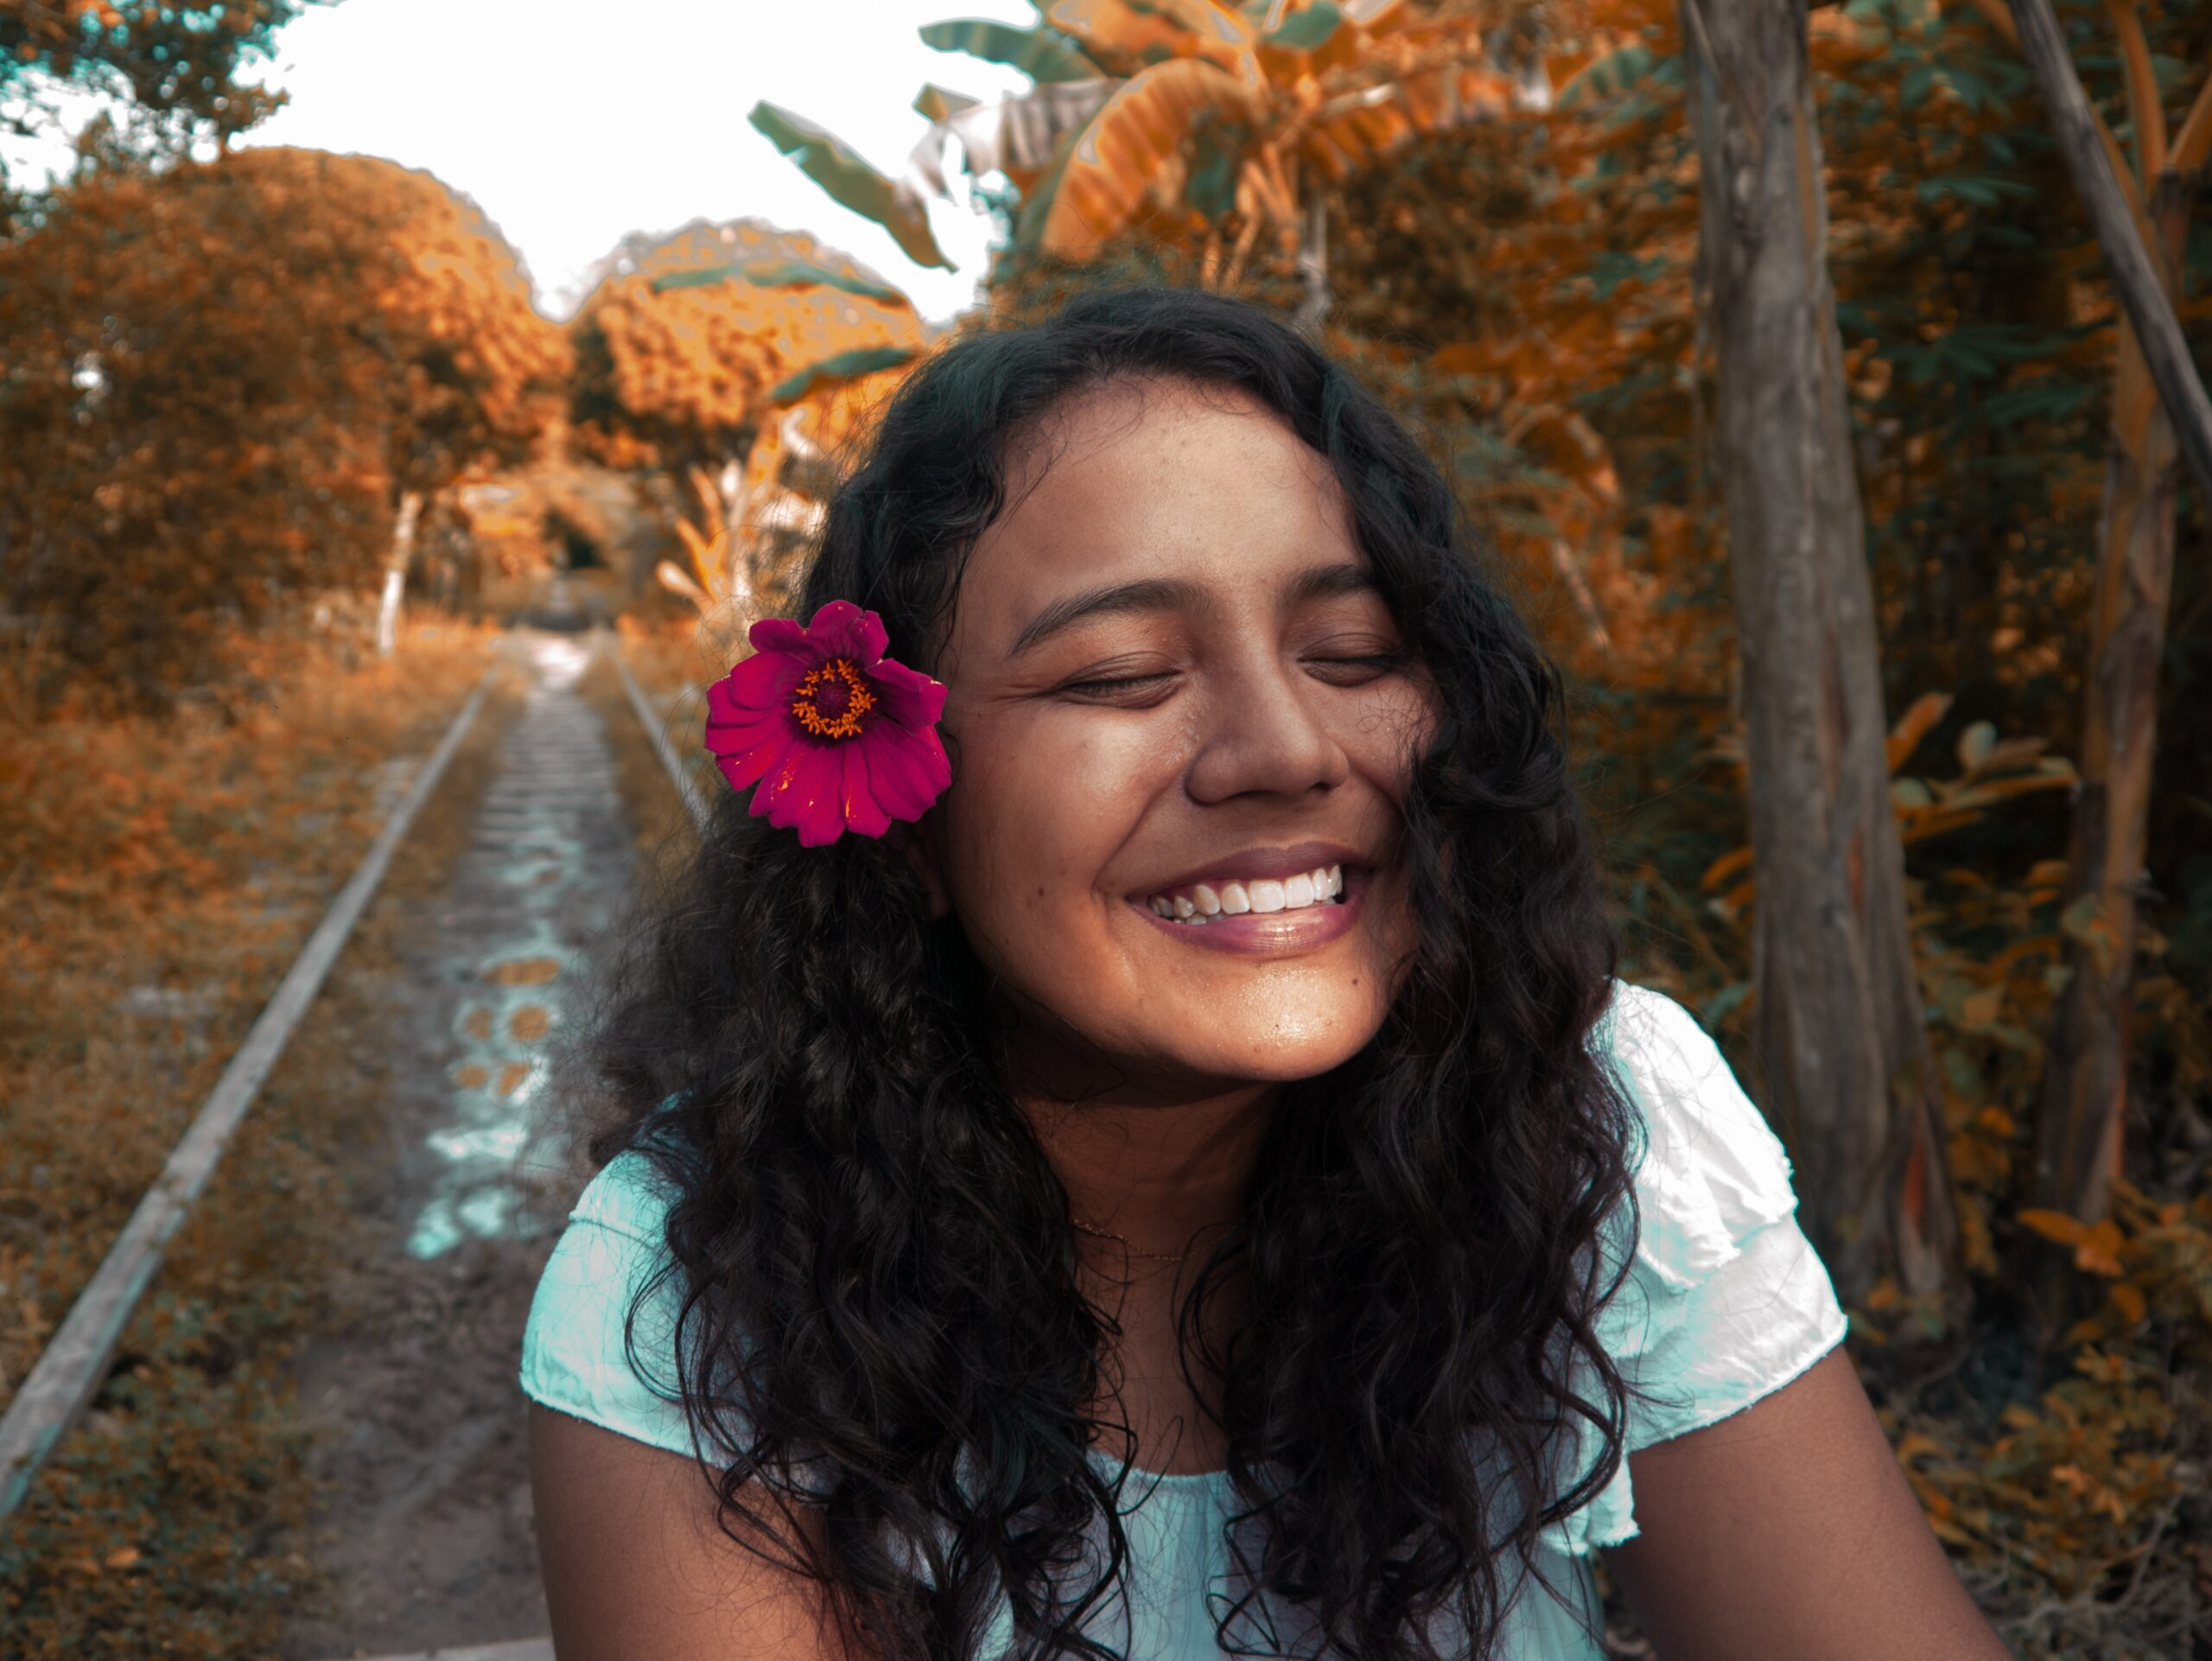 Image shows smiling girl with flower in her hair, wondering about correct terminology for her genitalia